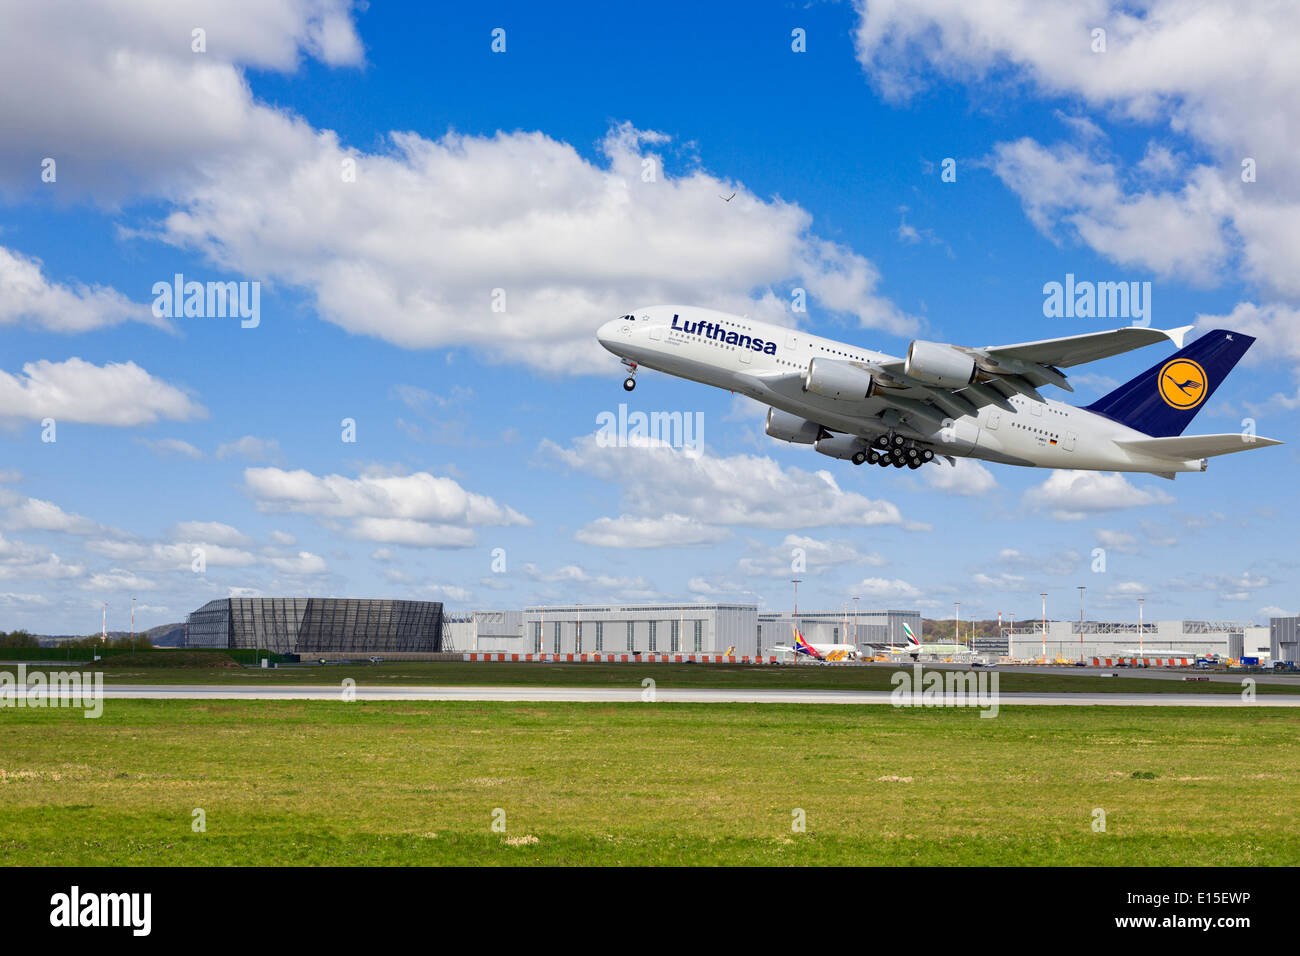 runway hamburg airport stockfotos runway hamburg airport bilder alamy. Black Bedroom Furniture Sets. Home Design Ideas